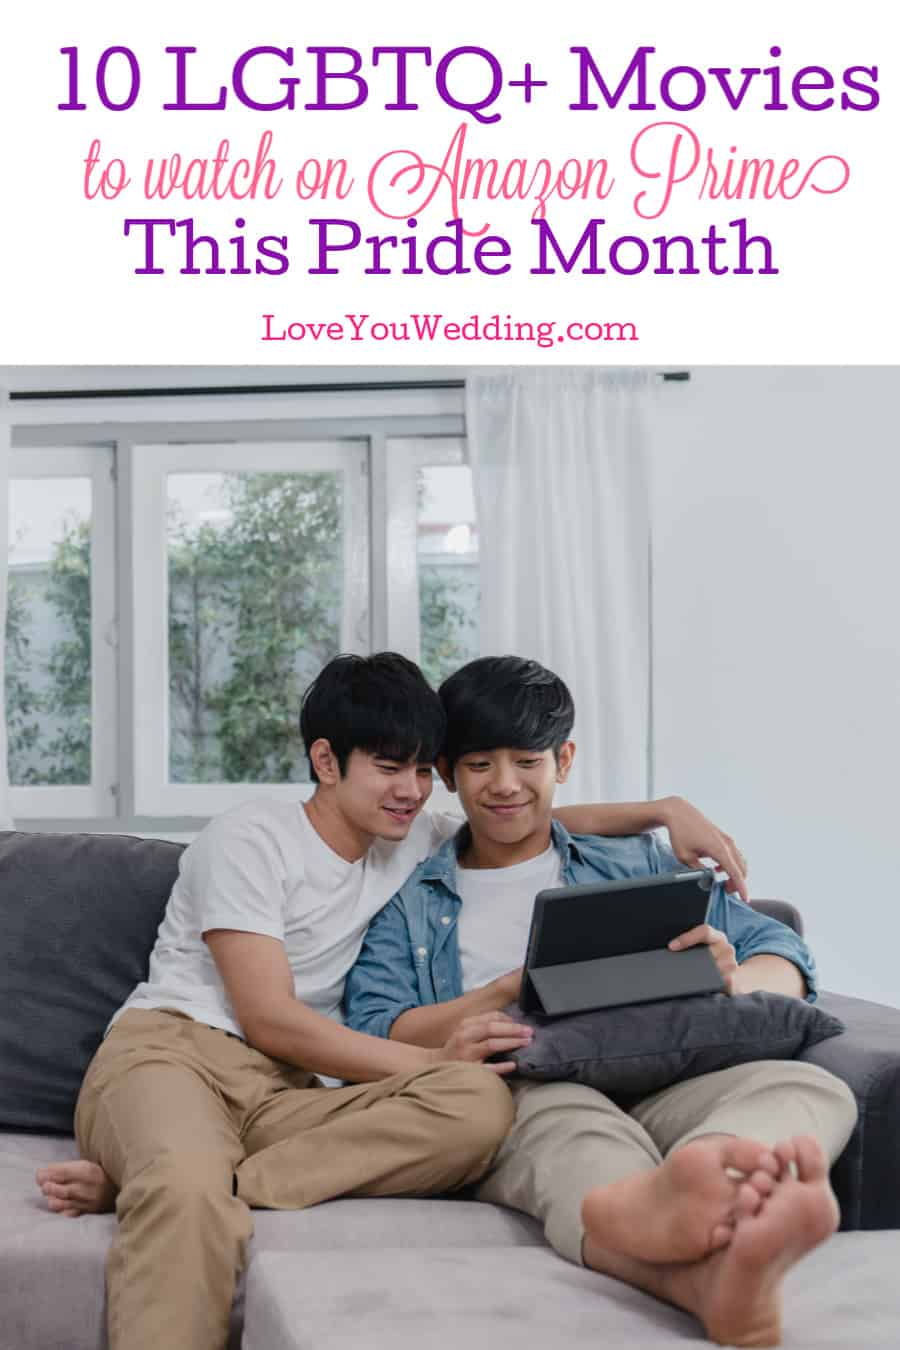 If you have Amazon Prime, you have access to some of the best LGBTQ+ movies ever made.Take a look at 10 to watch free or rent during Pride Month!